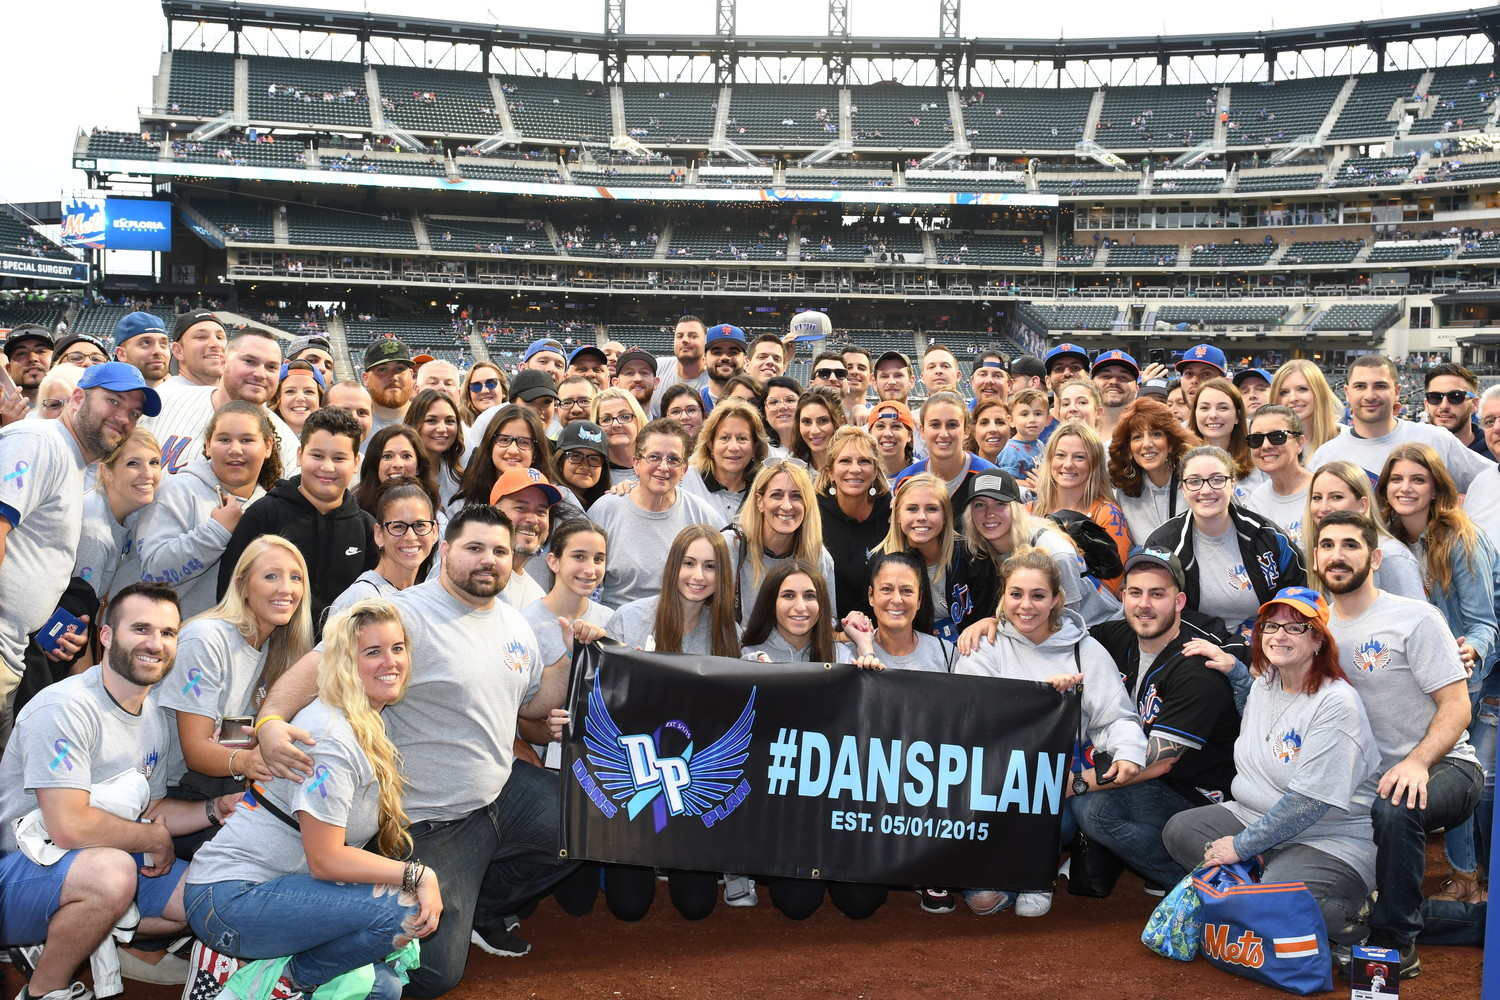 More than 150 local residents went out to Citi Field this summer for Dan's Plan's annual New York Mets outing to honor the memory of Franklin Square resident Dan Babich, whose suicide struck the community in 2015.